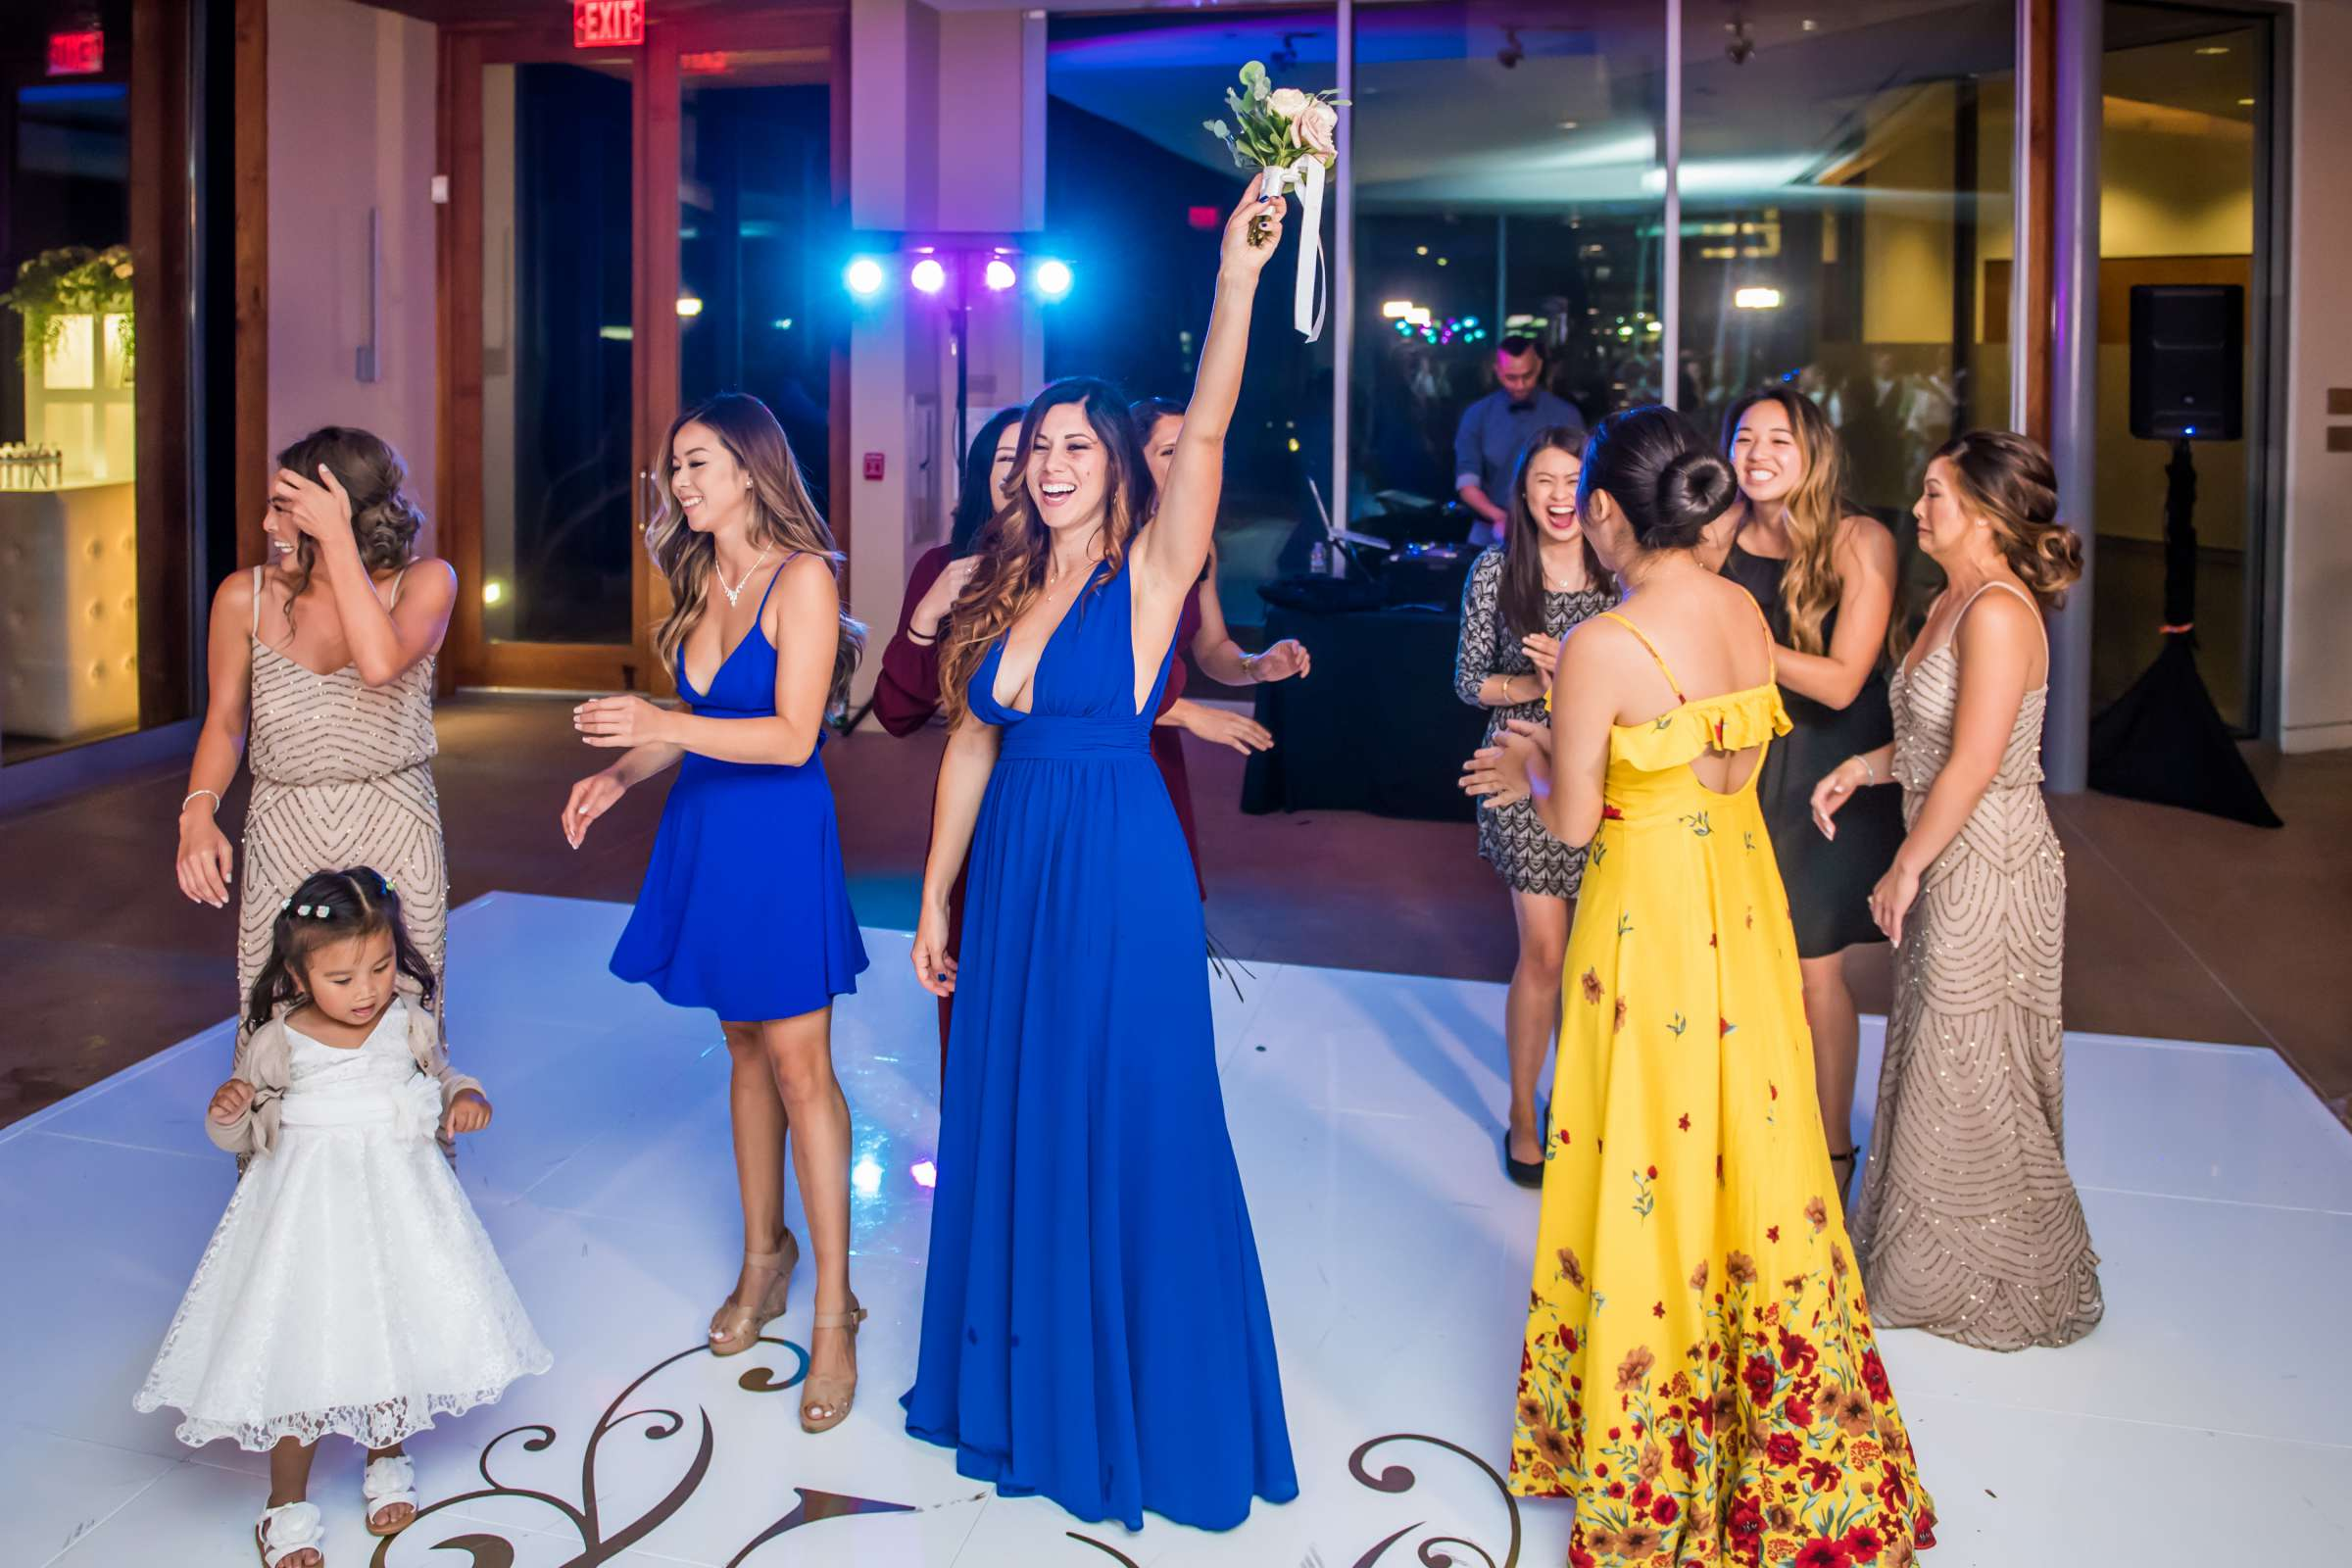 Scripps Seaside Forum Wedding coordinated by Lavish Weddings, Cindy and Justin Wedding Photo #381884 by True Photography